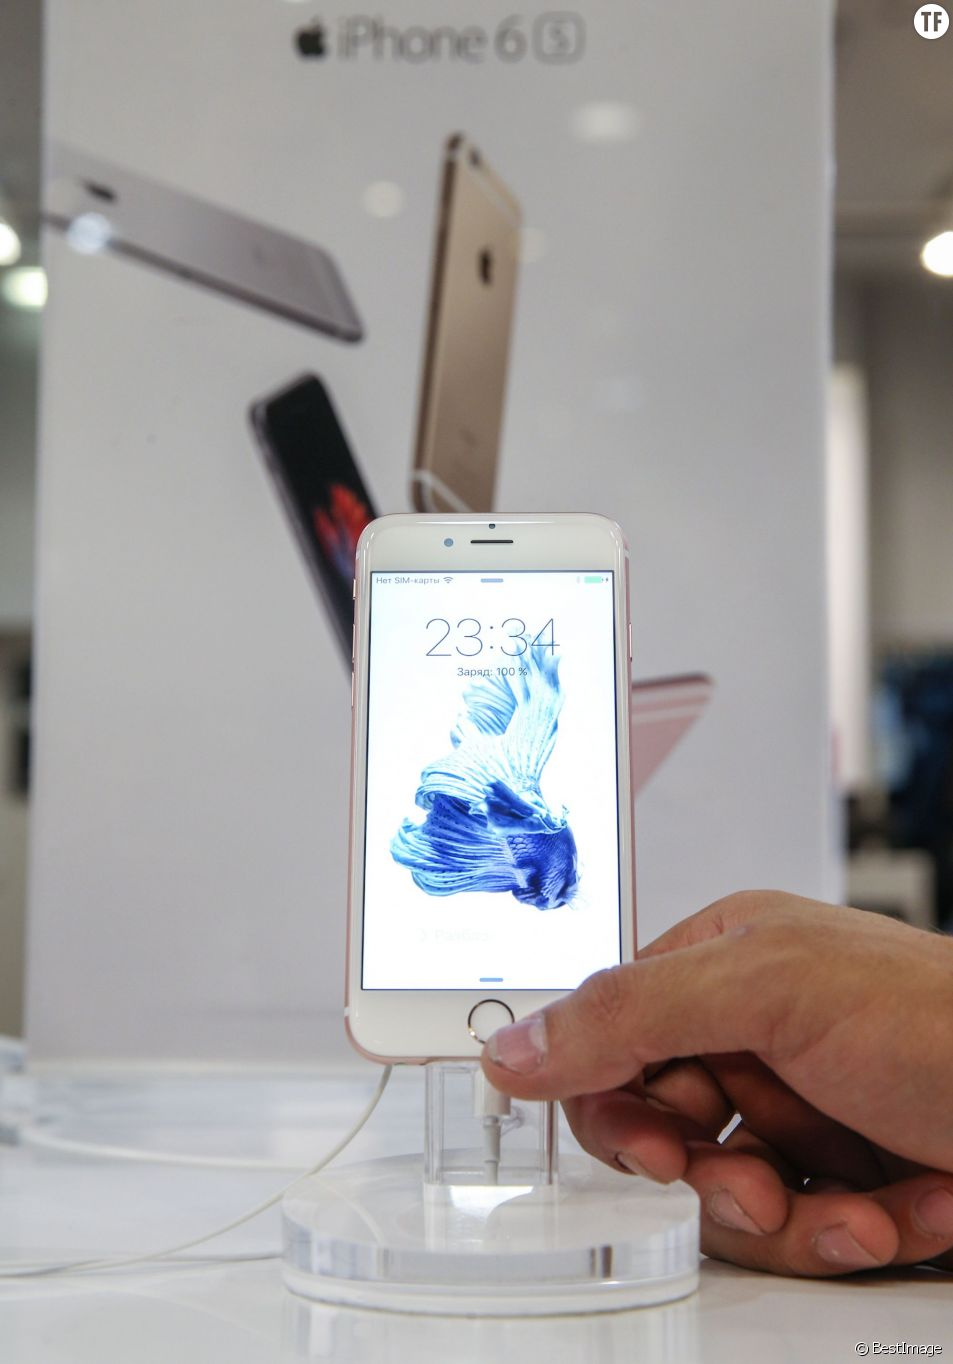 Le iphone 6s de chez Apple en vente à Moscou, le 09 octobre 2015.